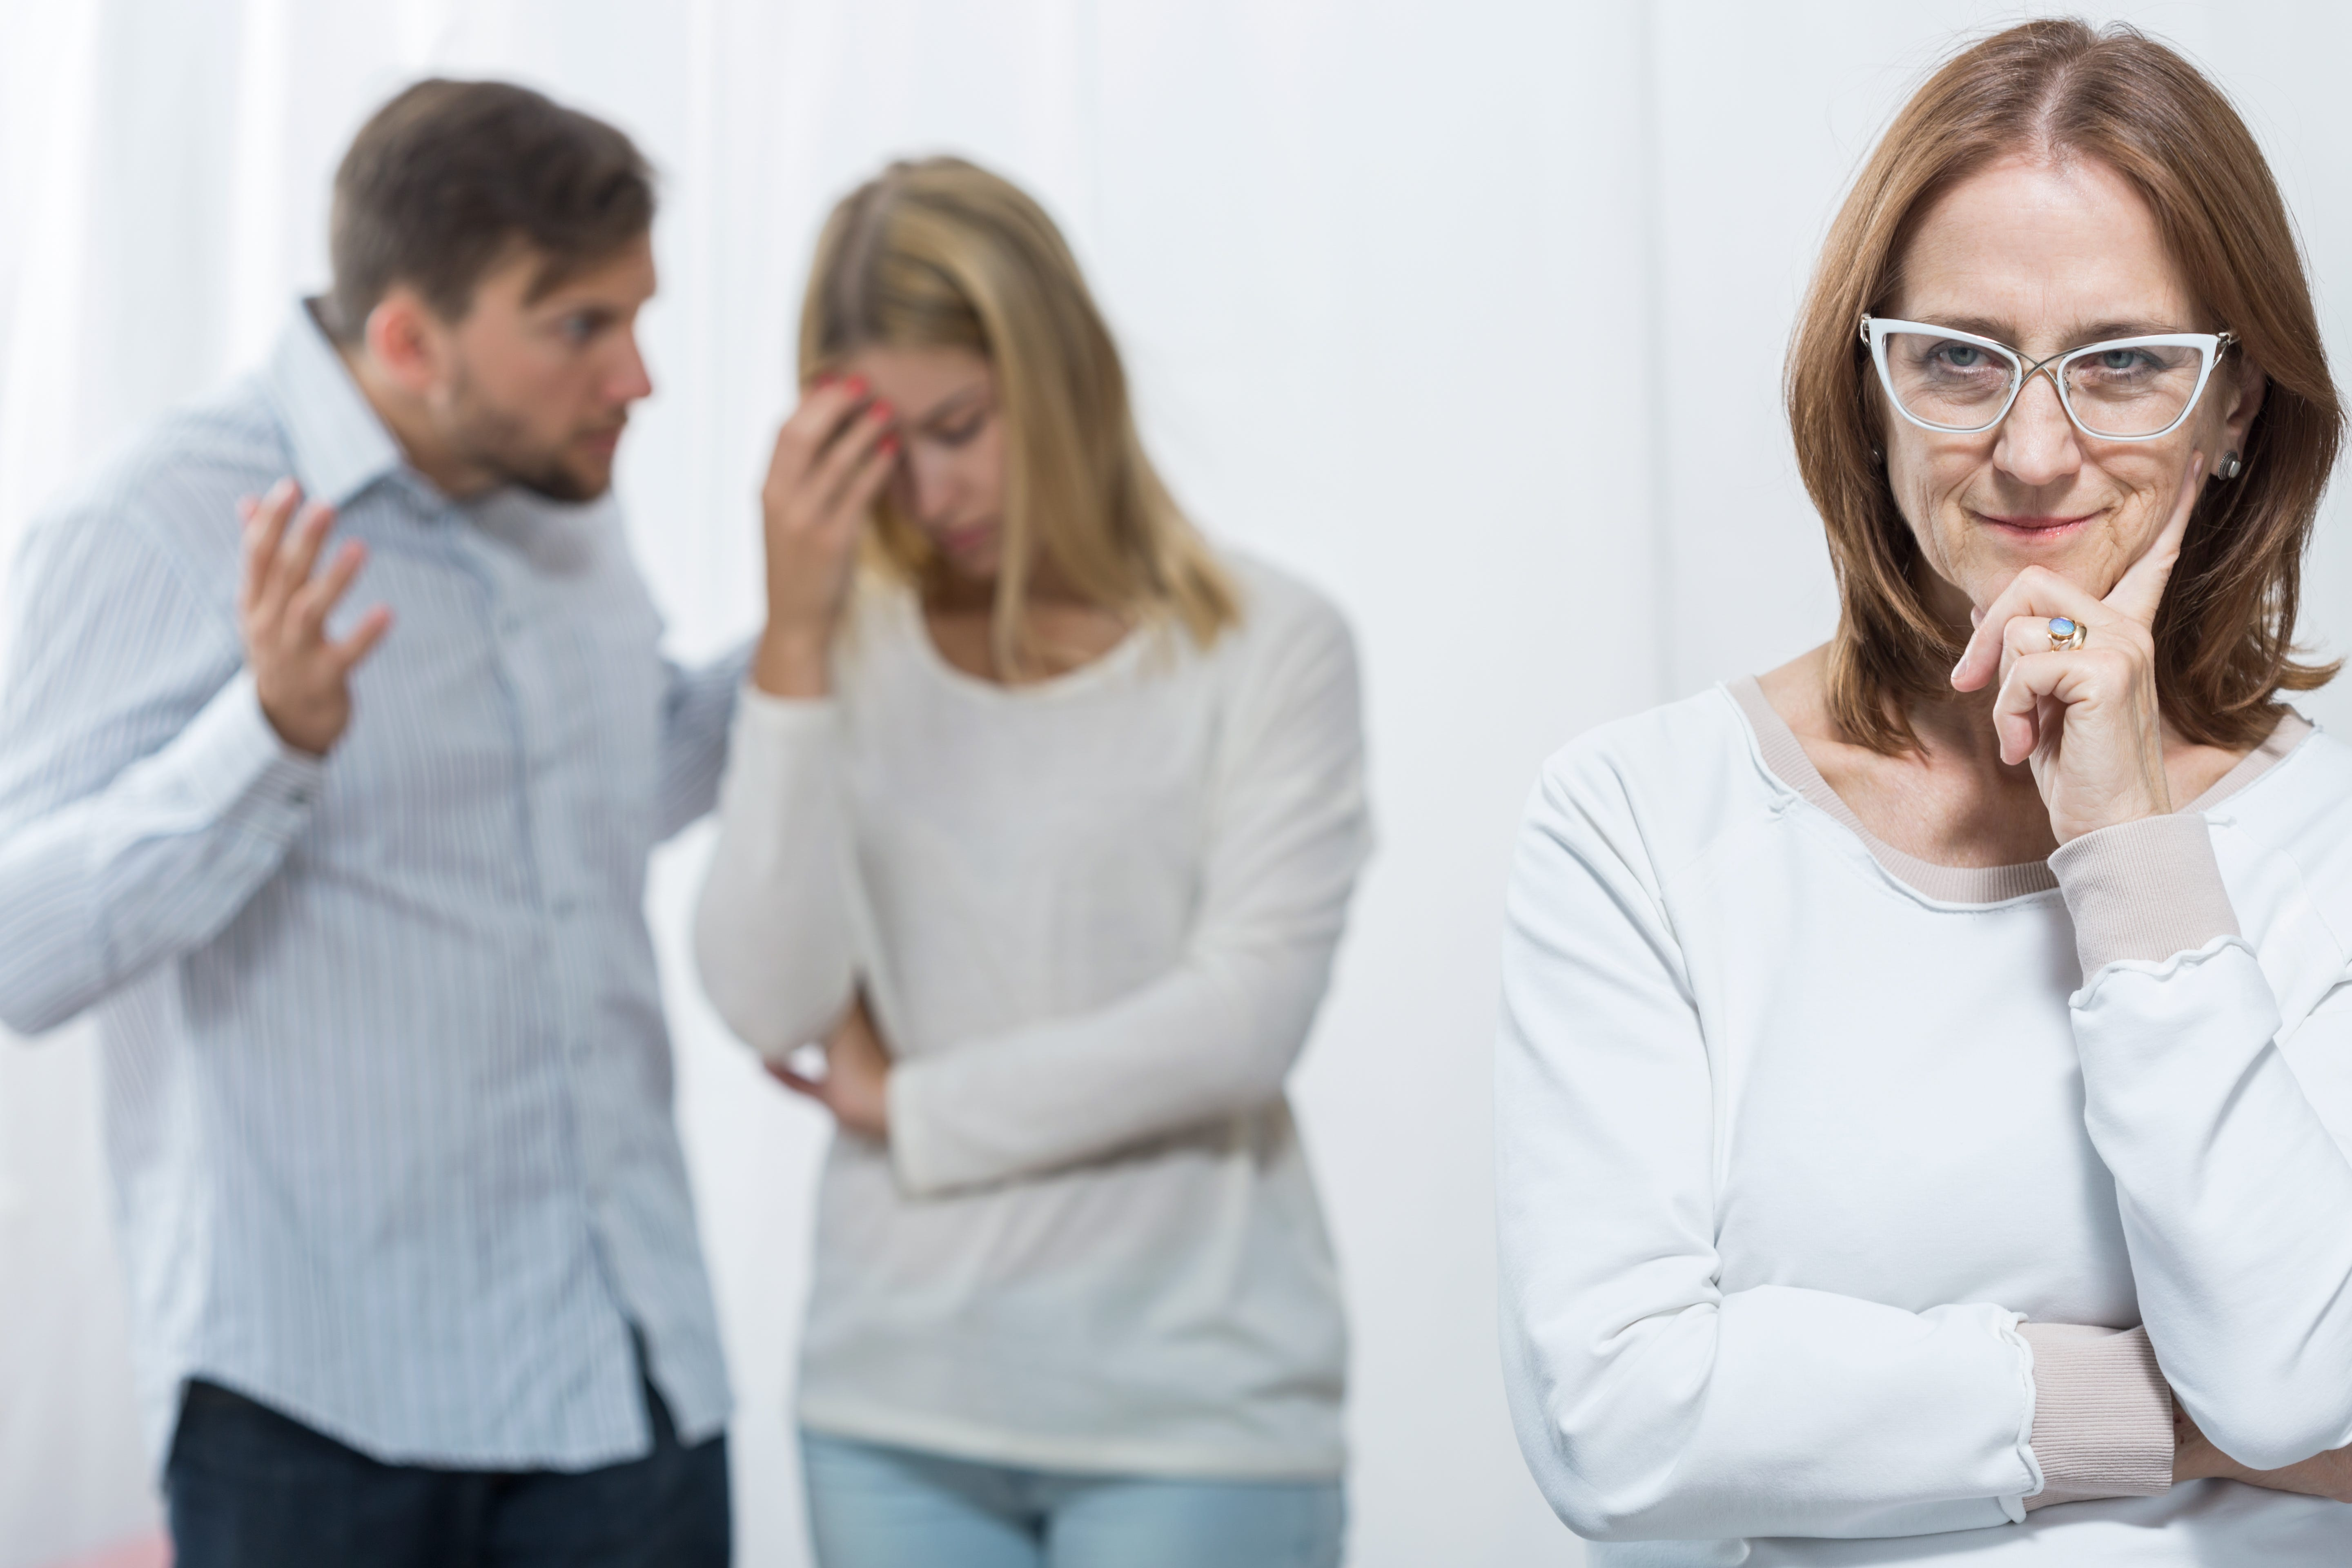 Handling a hostile sister-in-law requires action from the husband